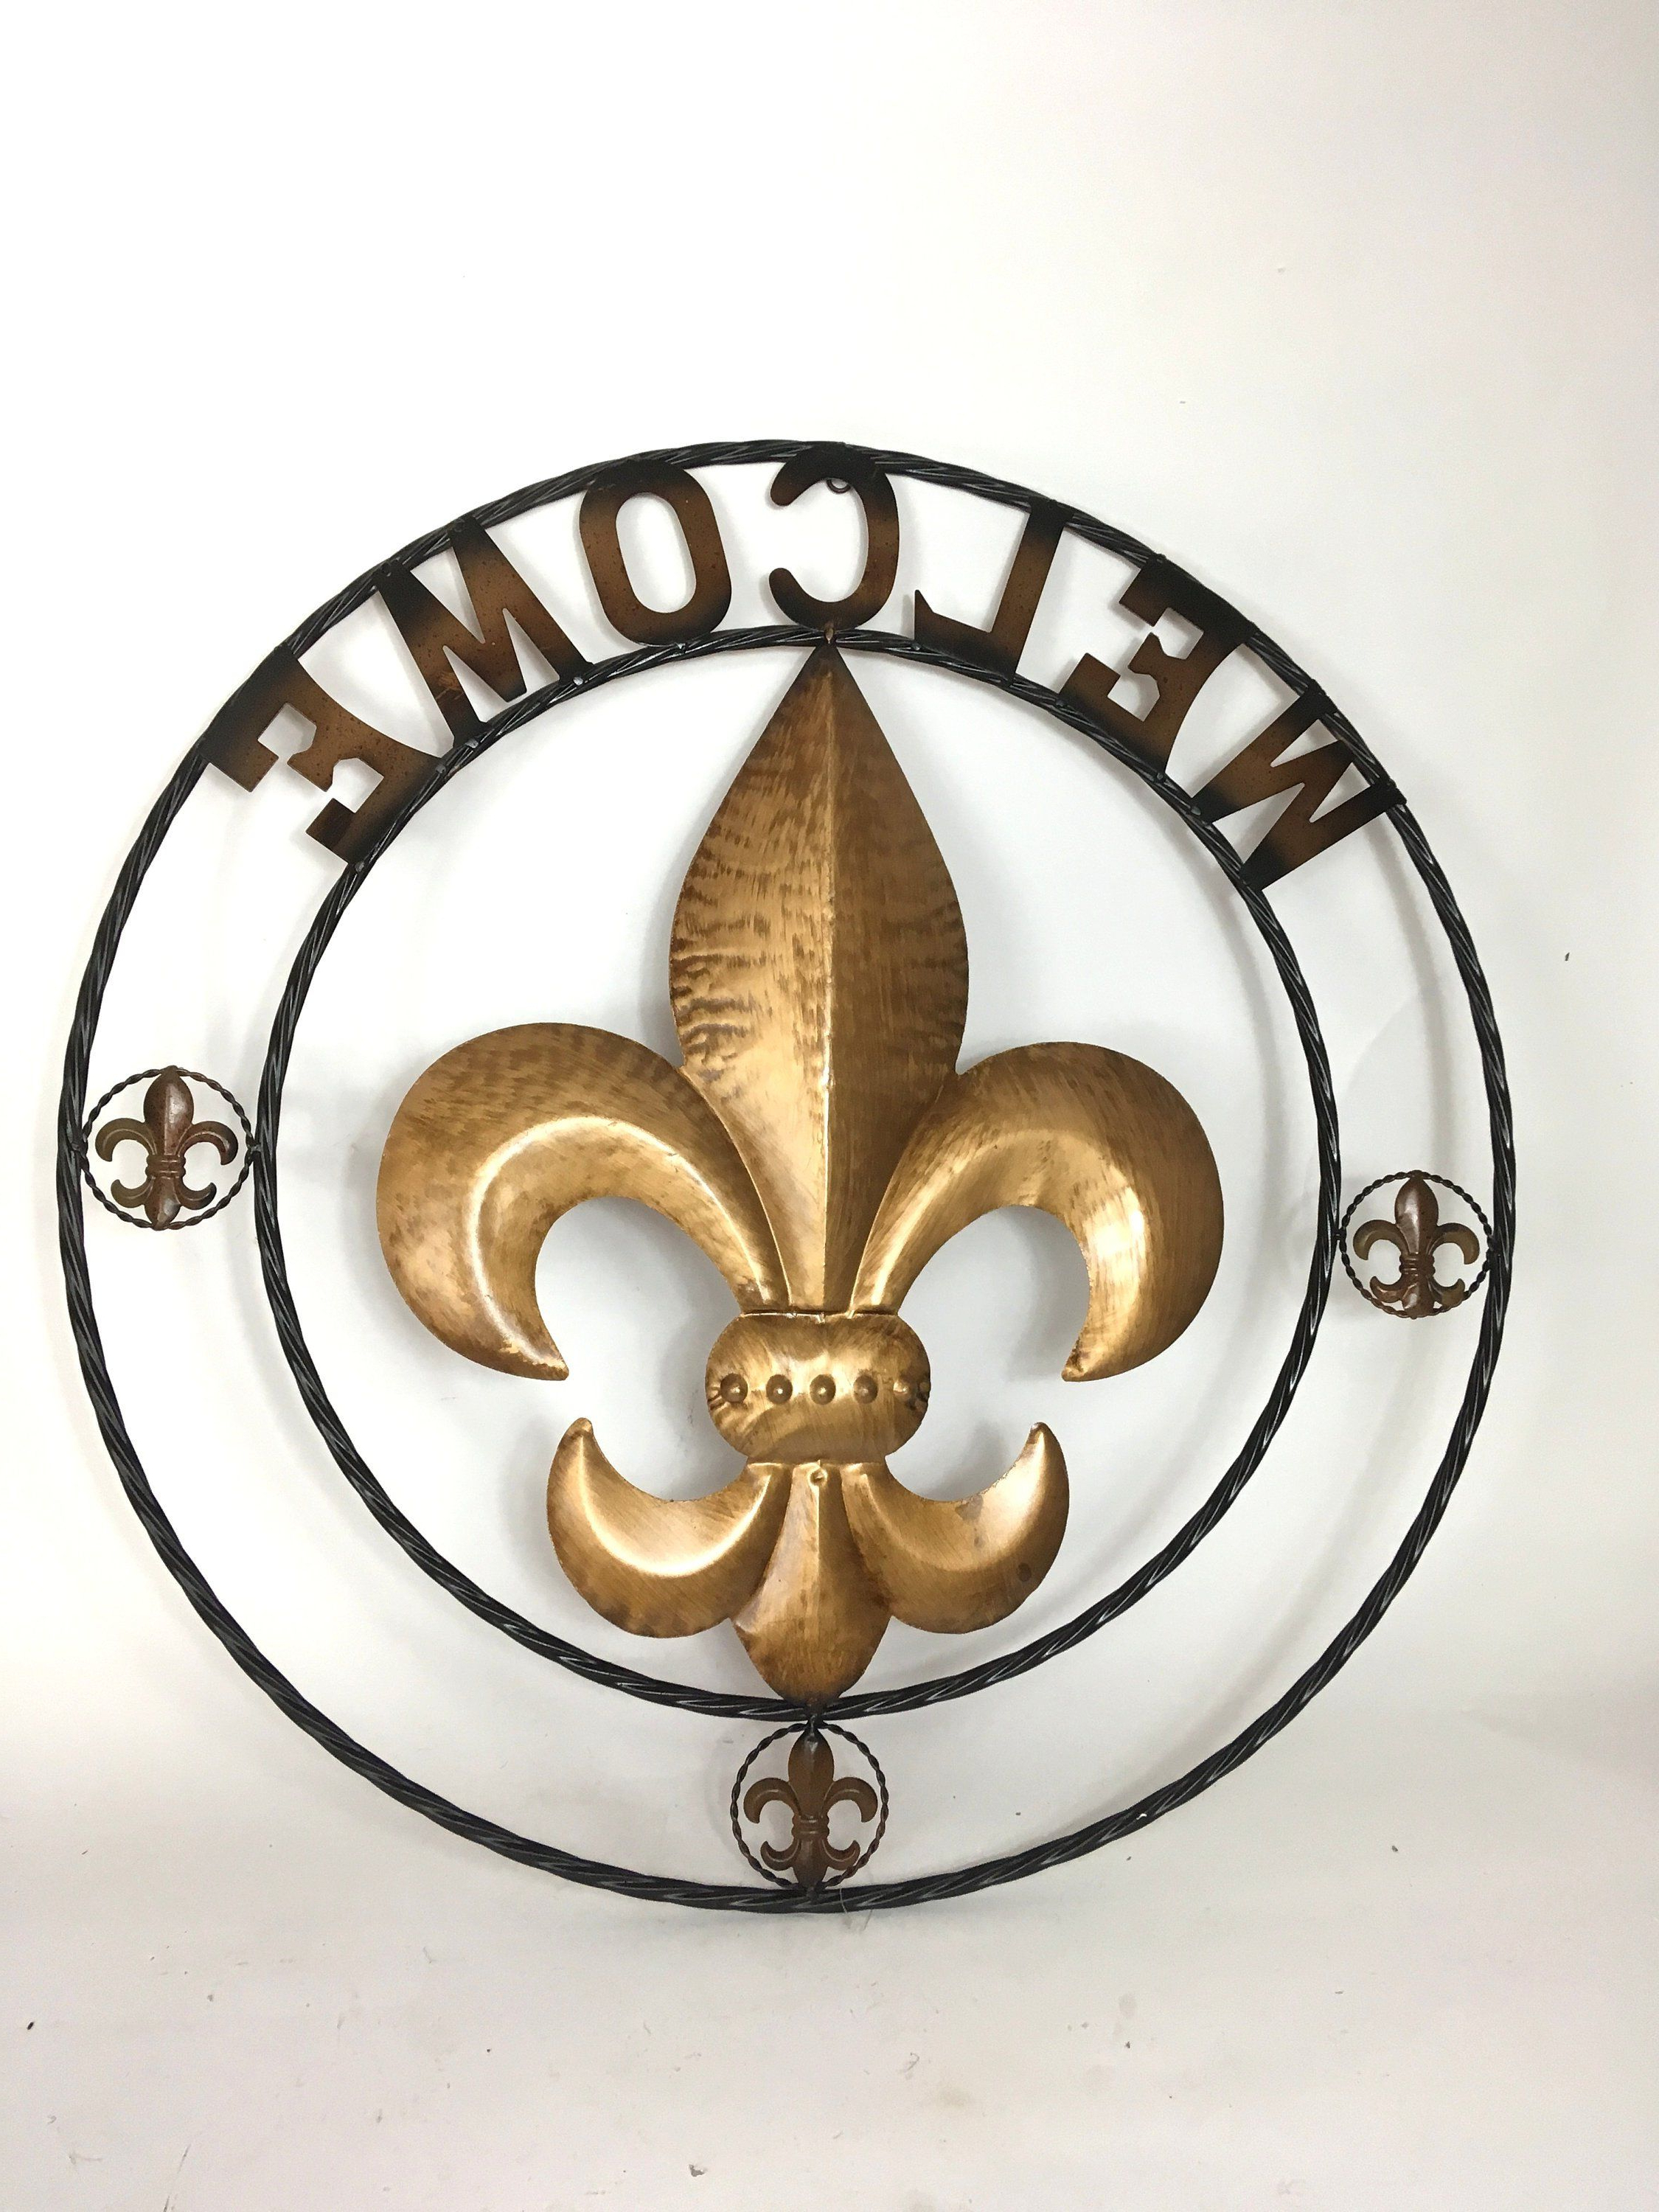 Metal Rope Wall Sign Wall Decor Intended For 2019 Welcome Fleur De Lis / Twisted Circle / Rope Ring / Wall Hanging (View 8 of 20)